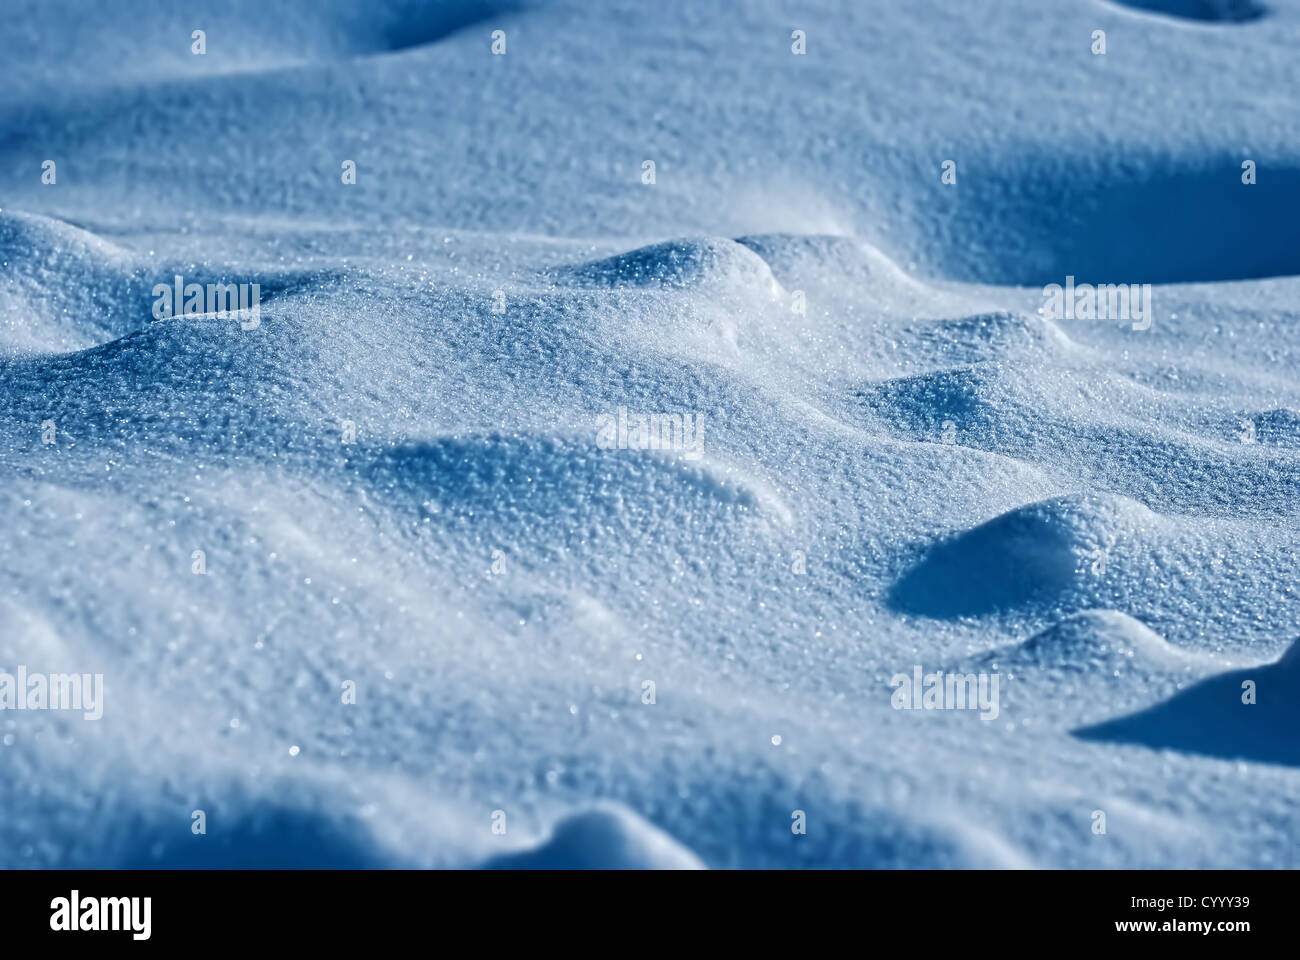 Sparkling surface of a snowdrift - Stock Image